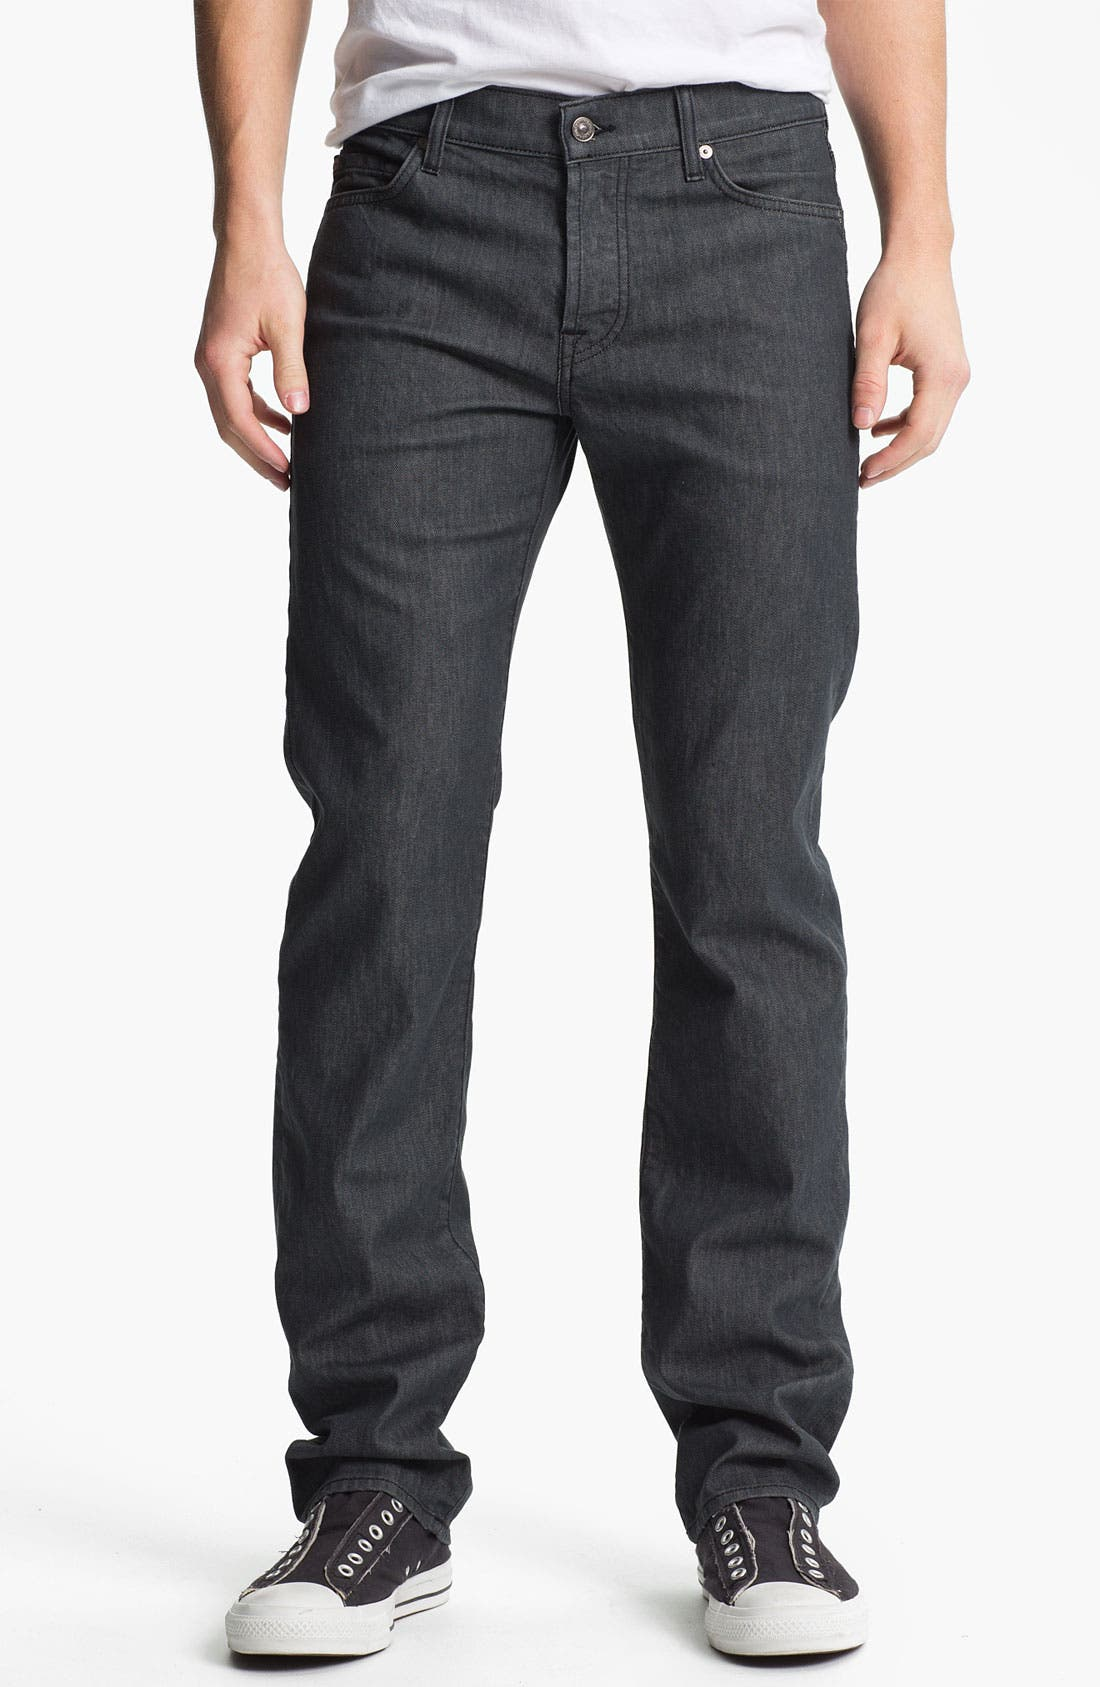 Alternate Image 1 Selected - 7 For All Mankind® 'Standard' Straight Leg Jeans (Clean Grey)